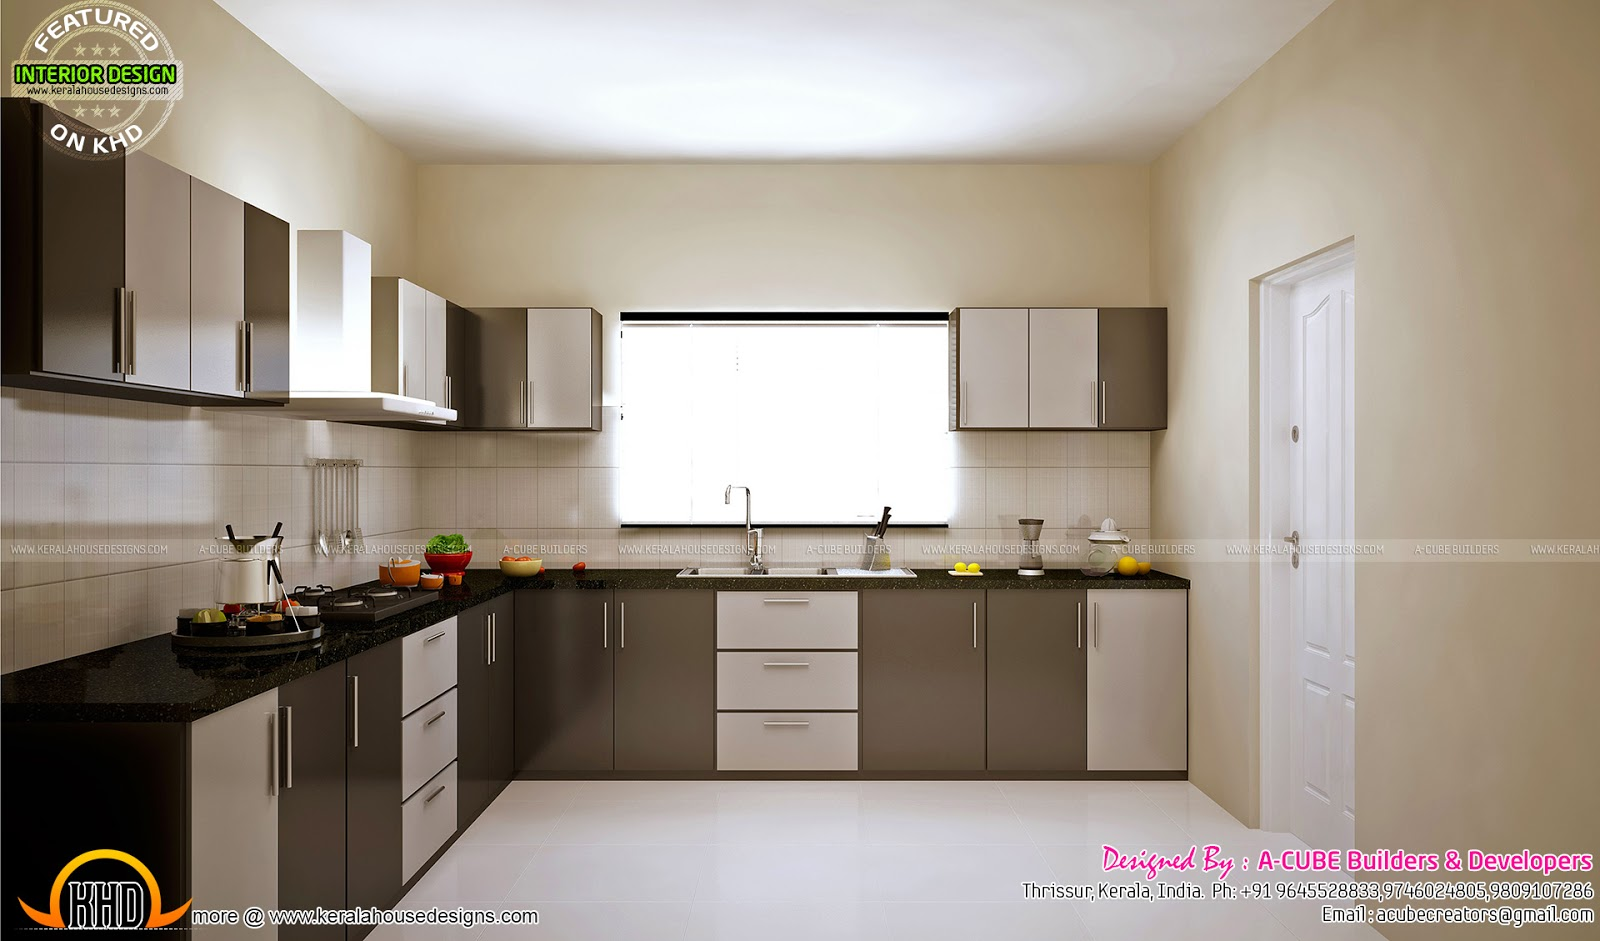 Kitchen and master bedroom designs  Kerala home design